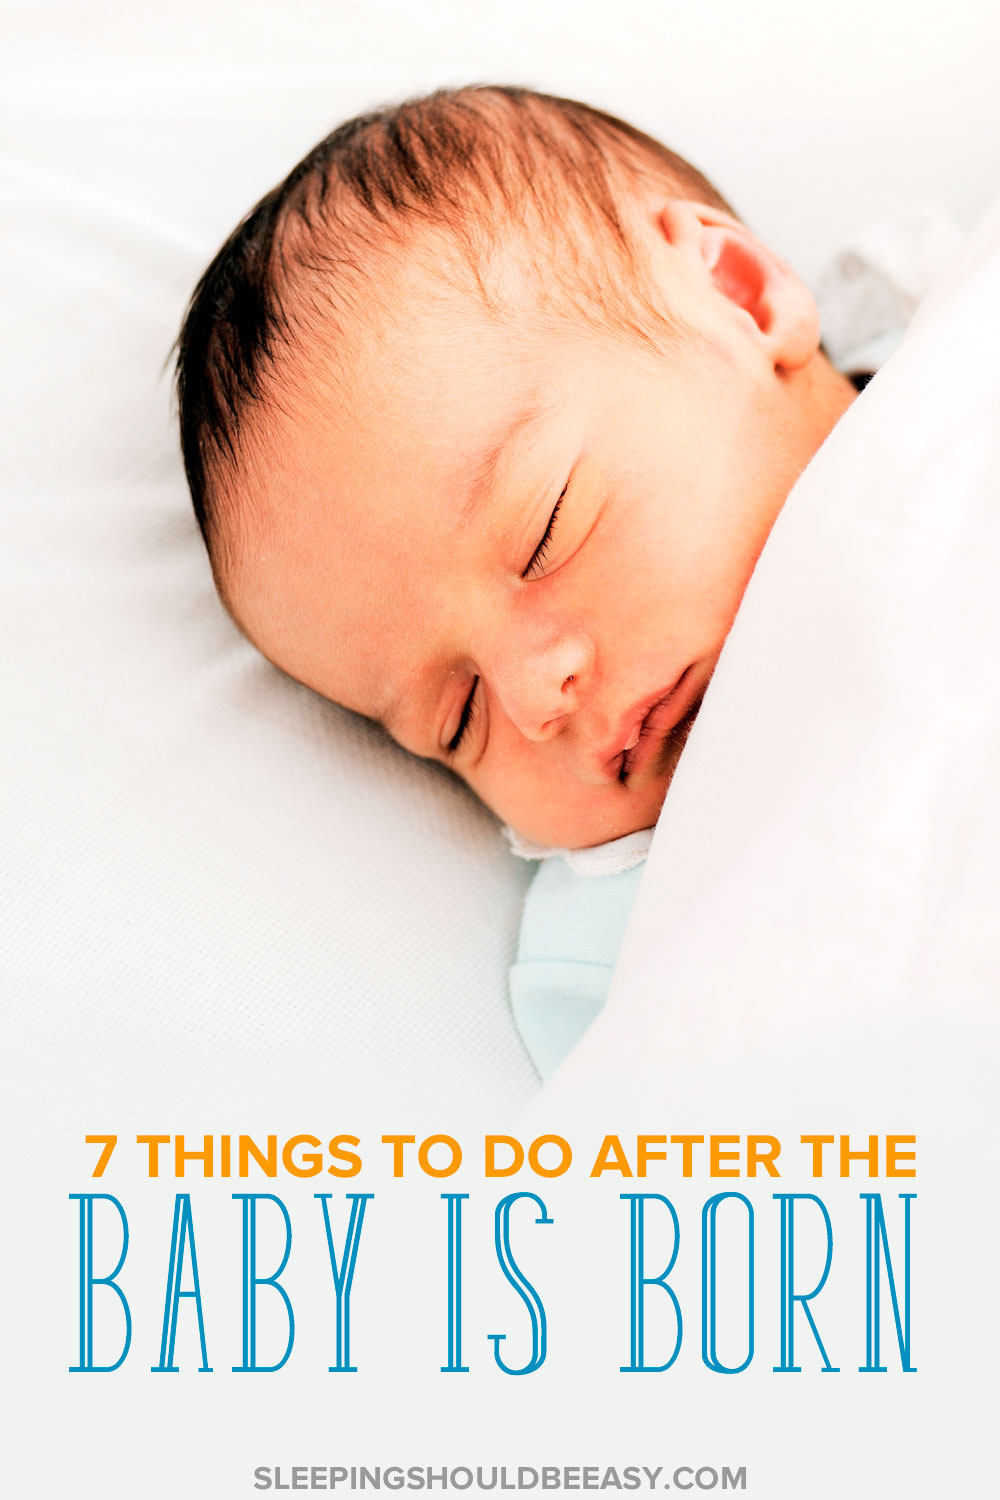 The days and weeks after giving birth can be hectic. Here's what to do after delivery and the 7 things to do after the baby is born.